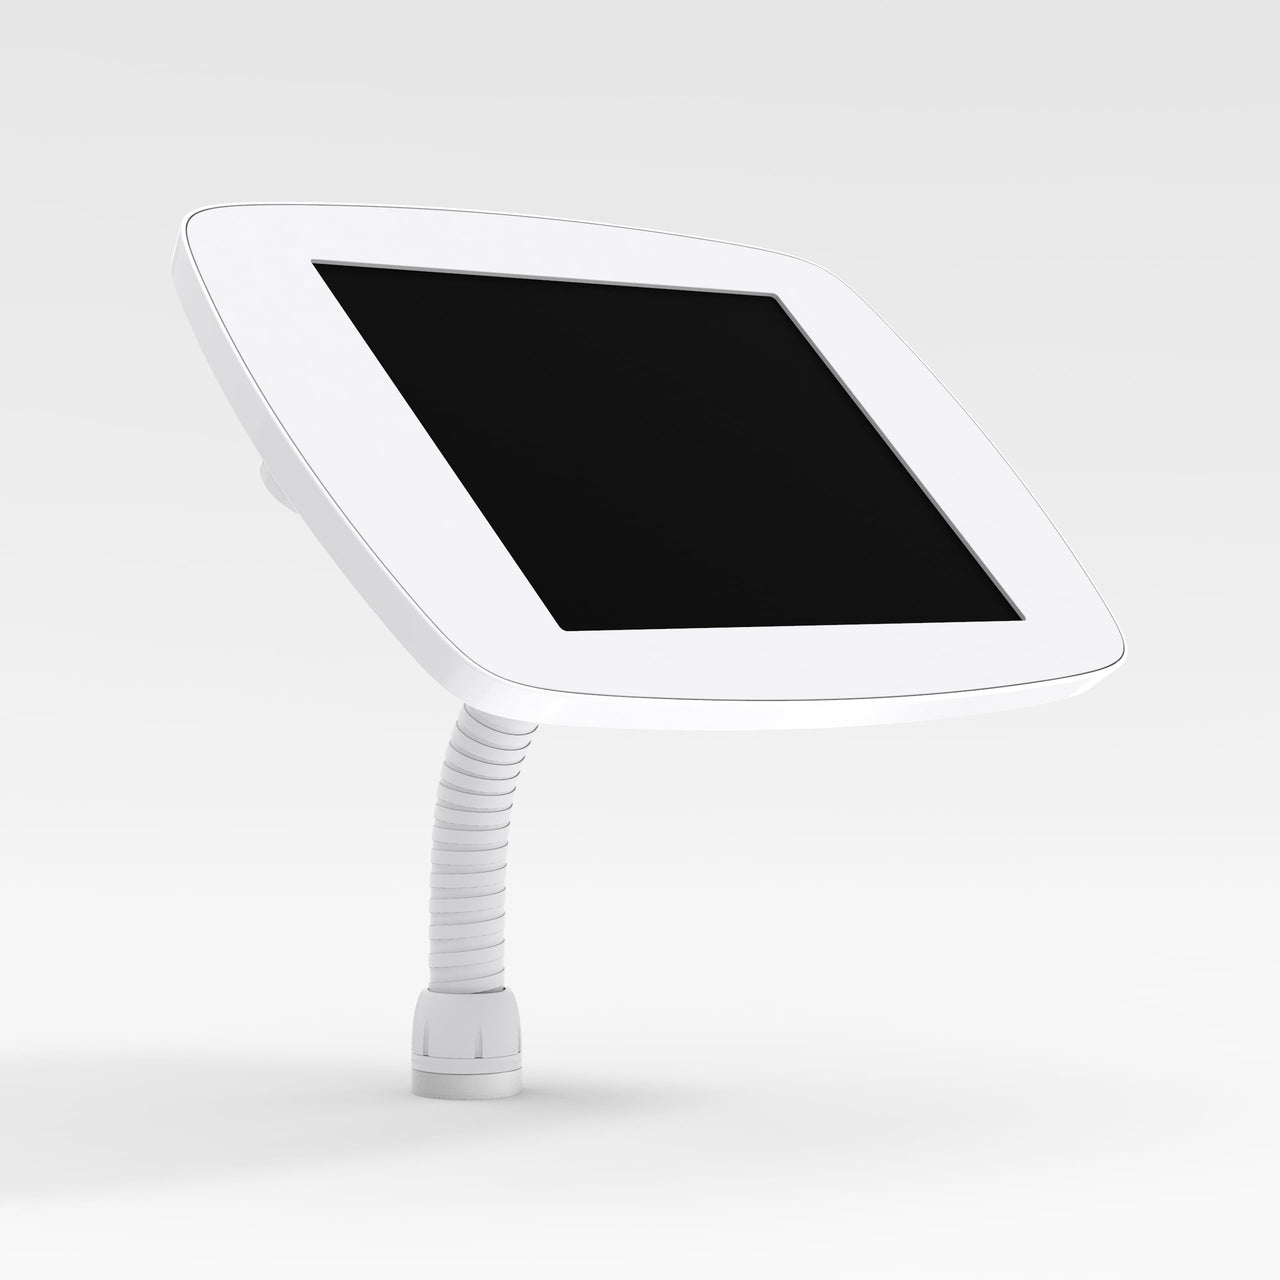 Bouncepad Flex - A secure tablet & iPad gooseneck stand in white.